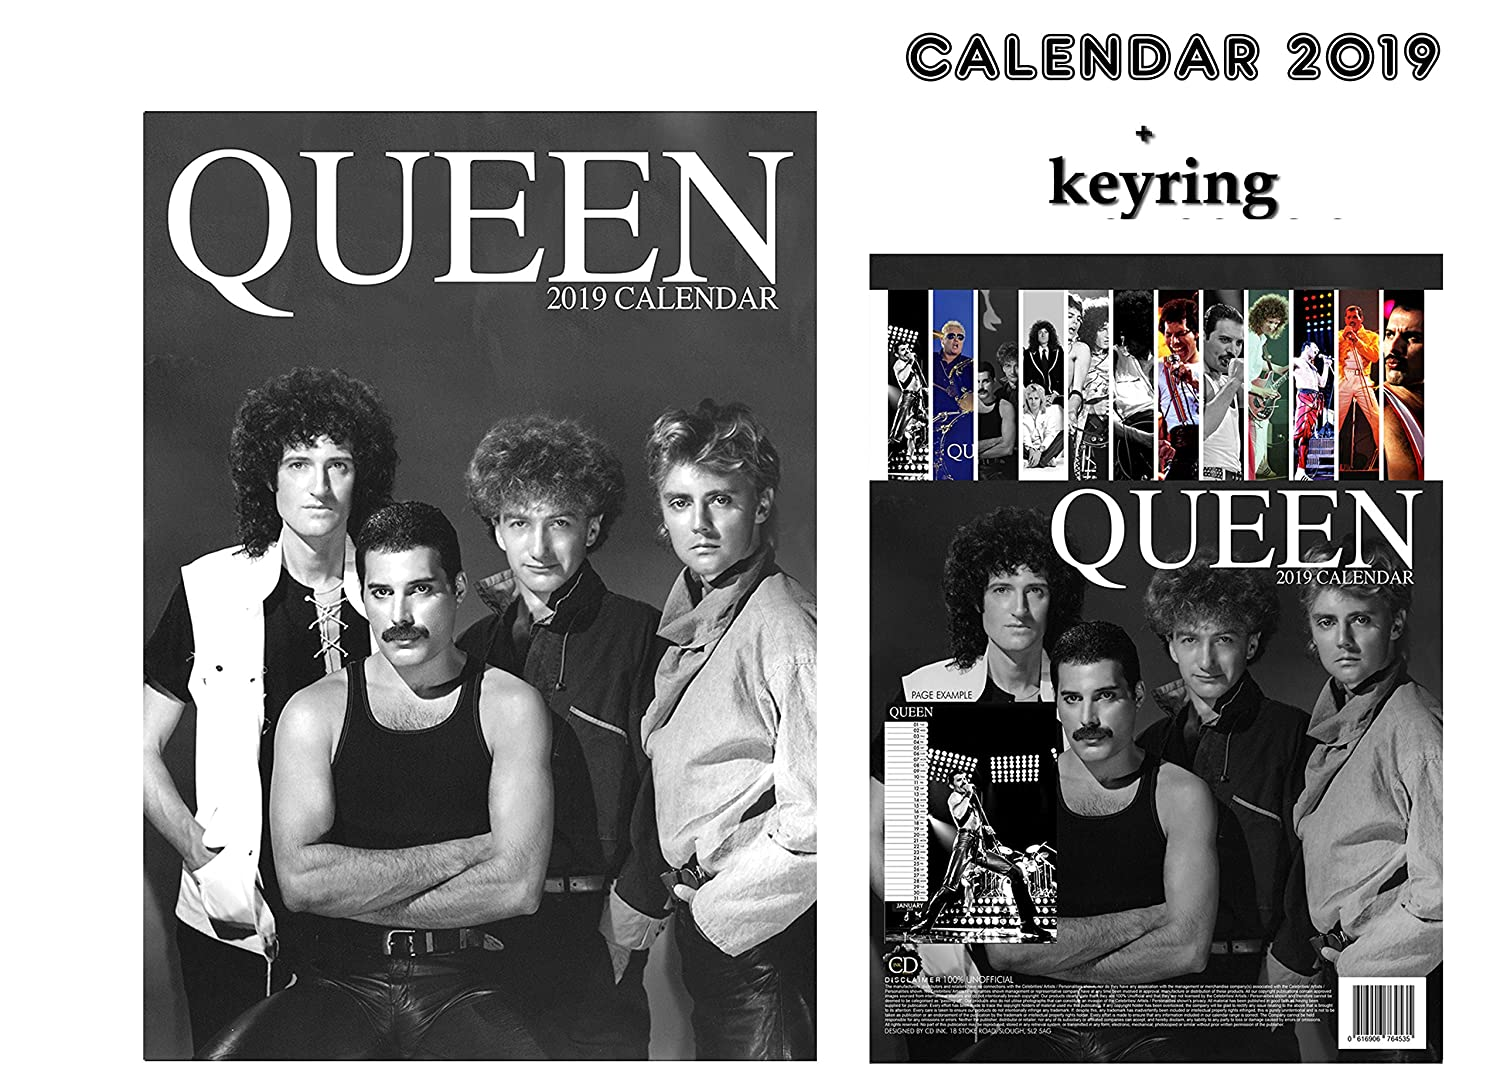 QUEEN CALENDARIO 2019 + QUEEN LLAVERO